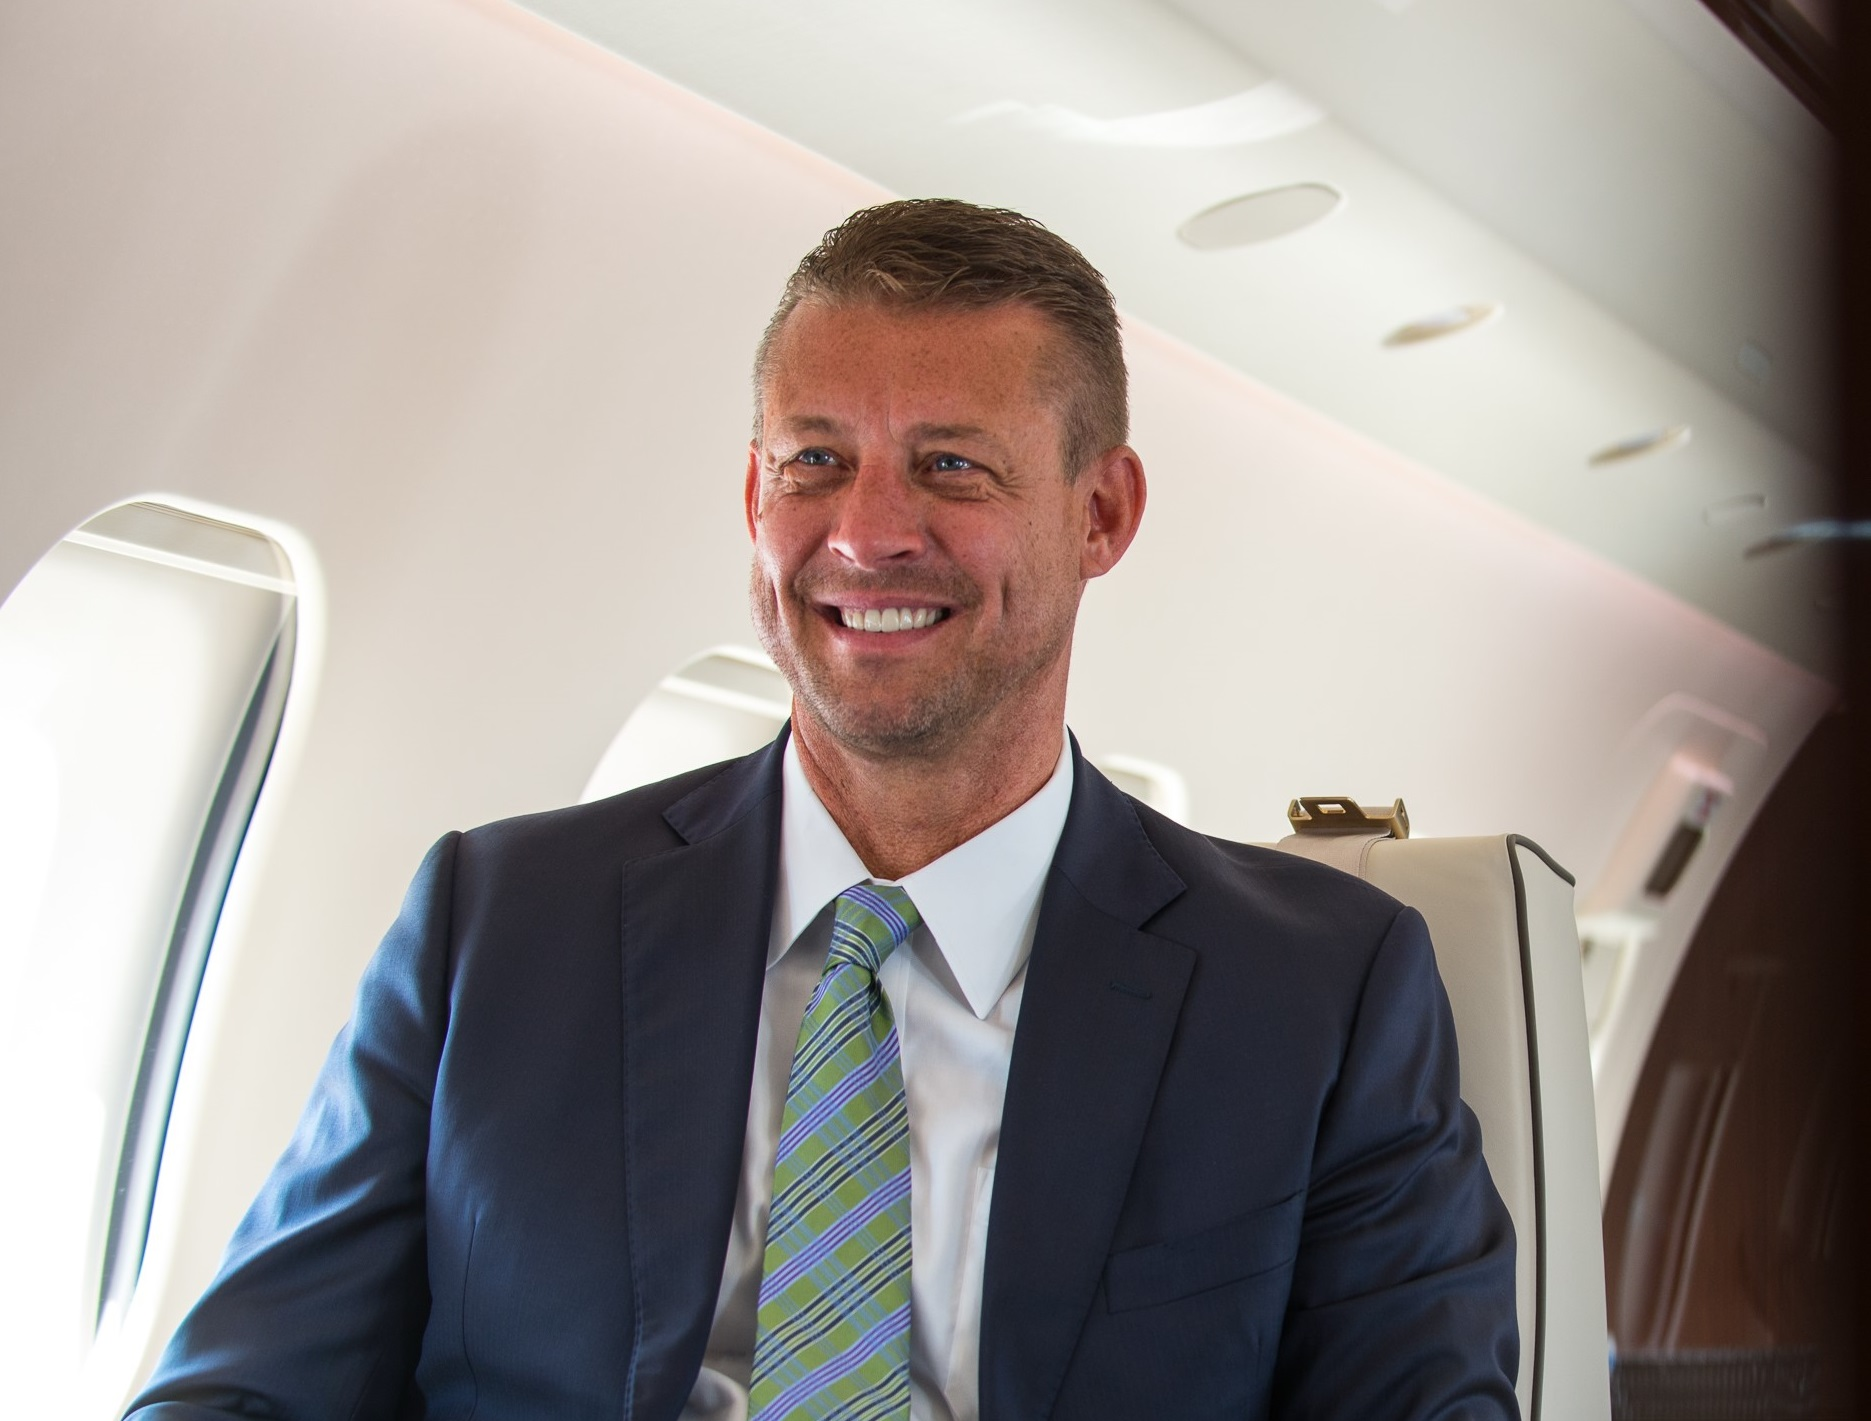 Chad Anderson, President of Jetcraft